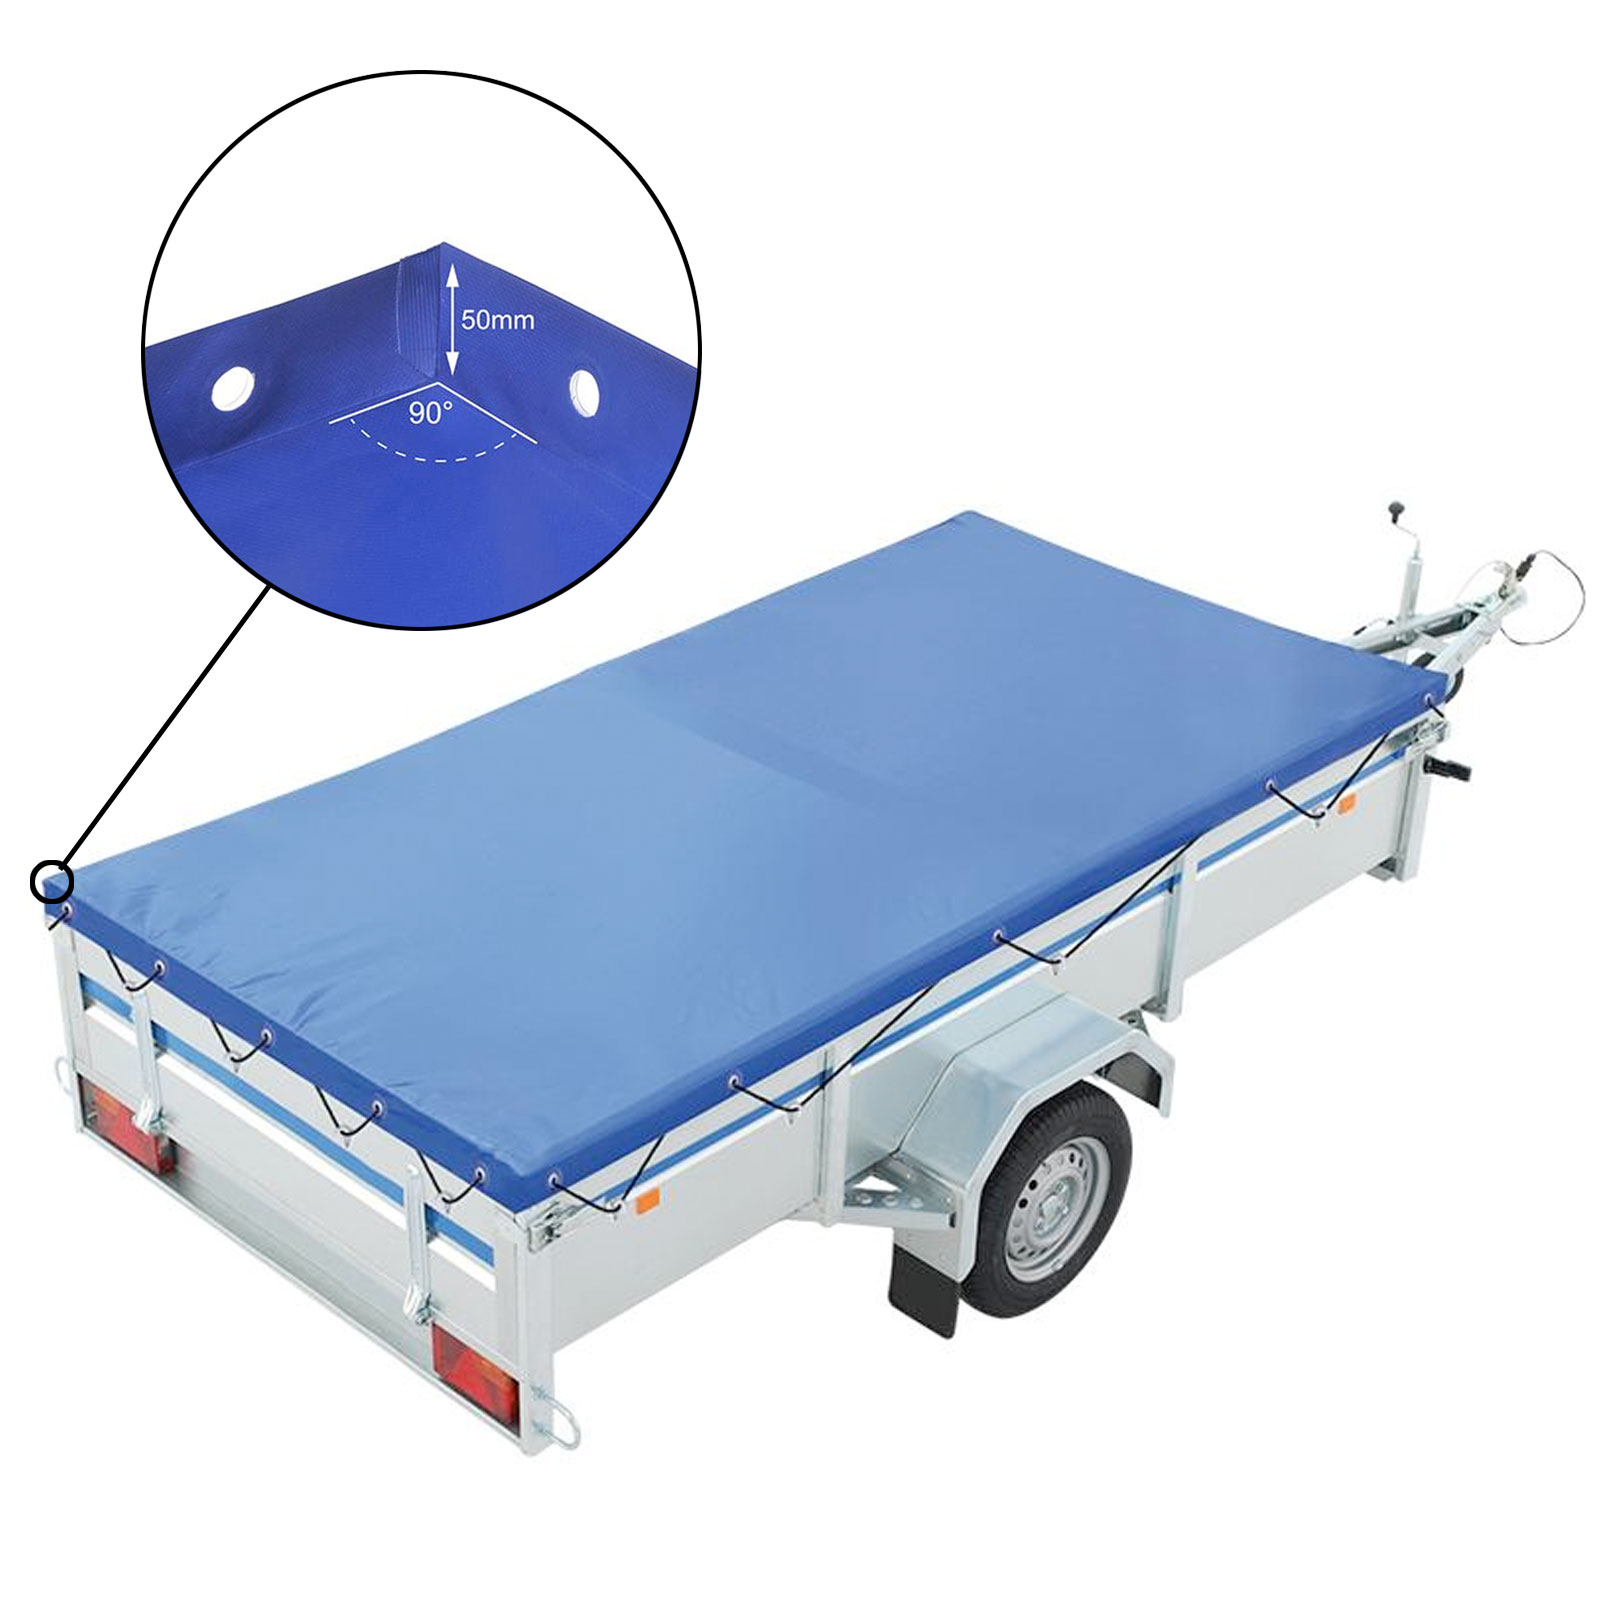 Trailer flat tarpaulin blue with rubber belt 2075x1140x50mm